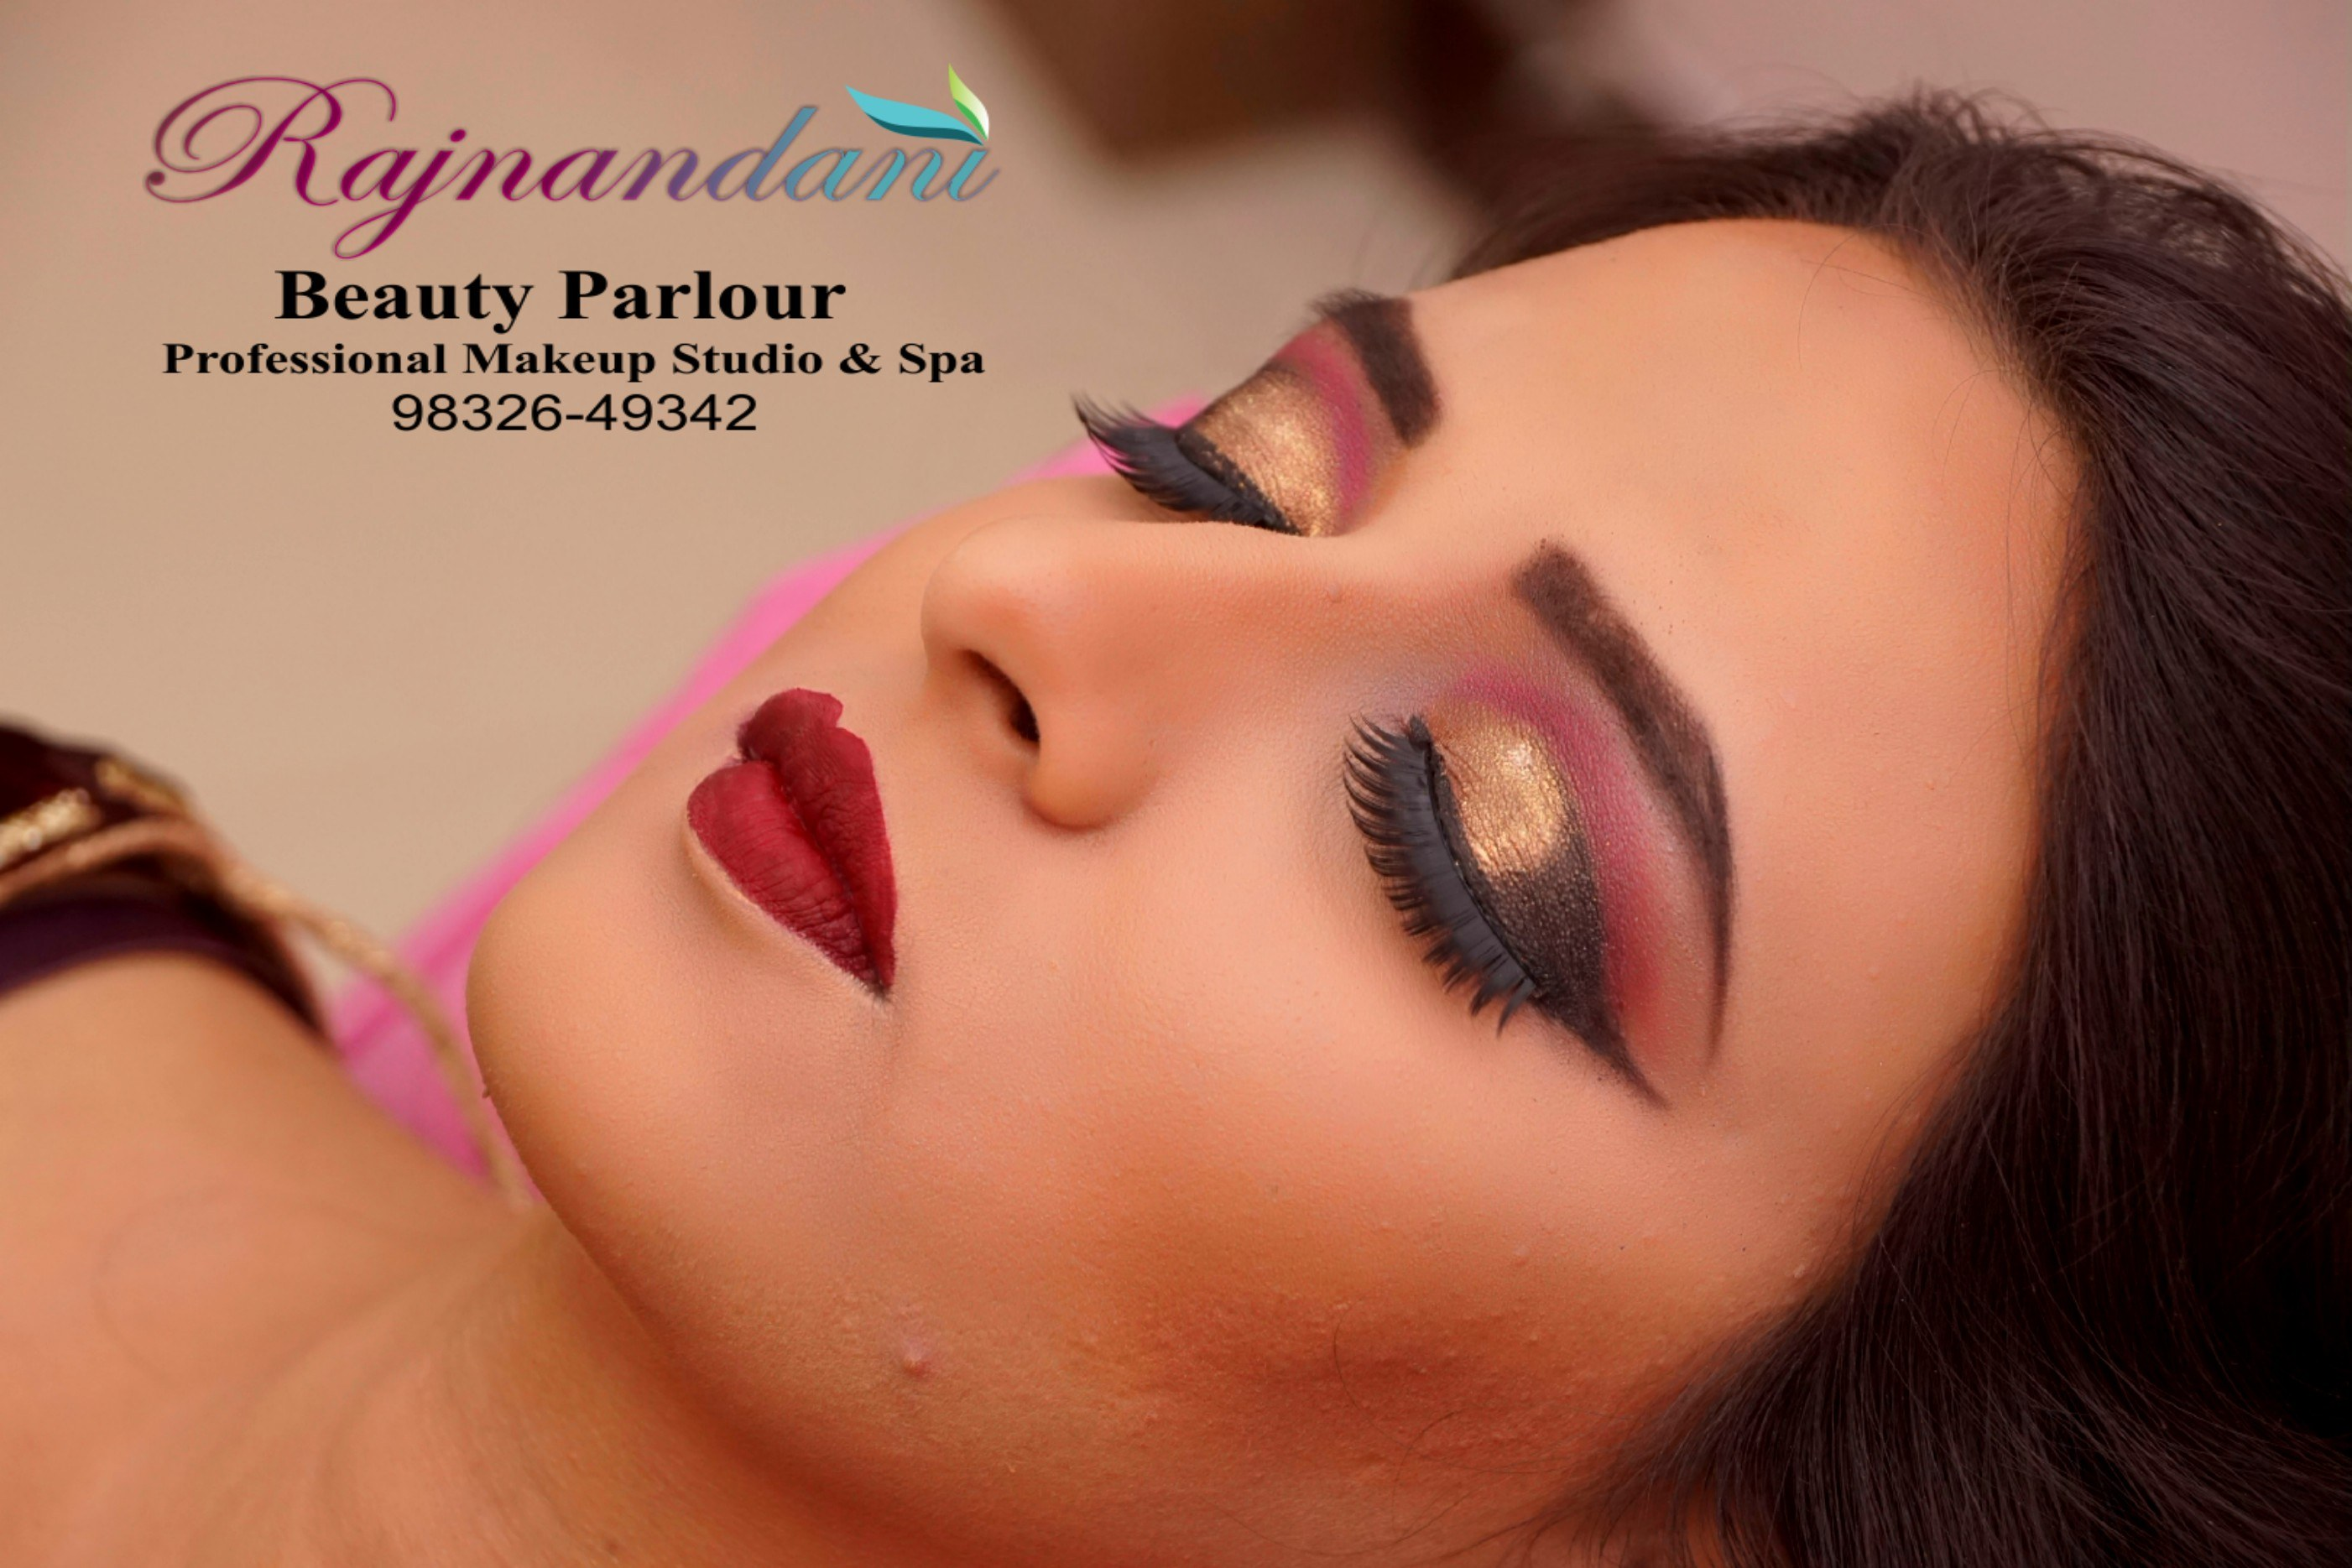 Portfolio - Rajnandani Beauty parlour professional Makeup Studio and spa